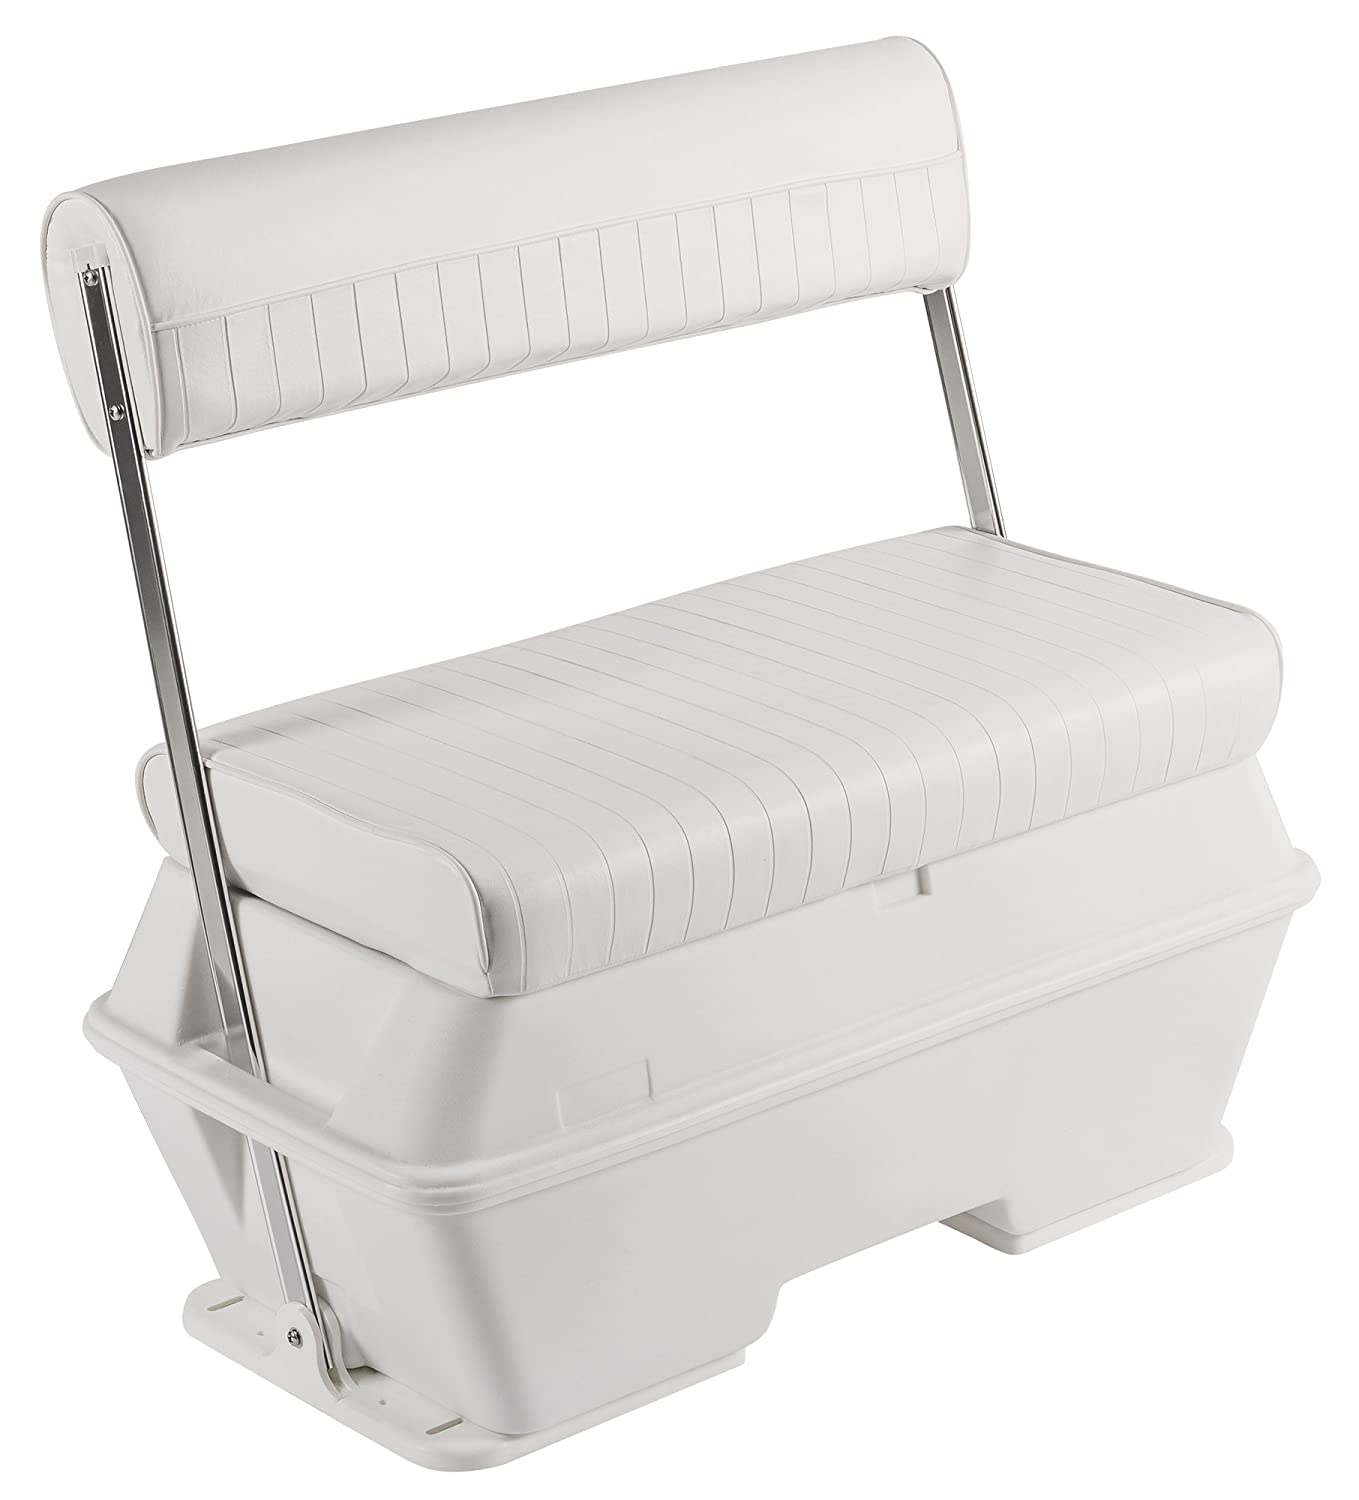 Amazing Wise Offshore Swingback Cooler 70 Quart Pdpeps Interior Chair Design Pdpepsorg